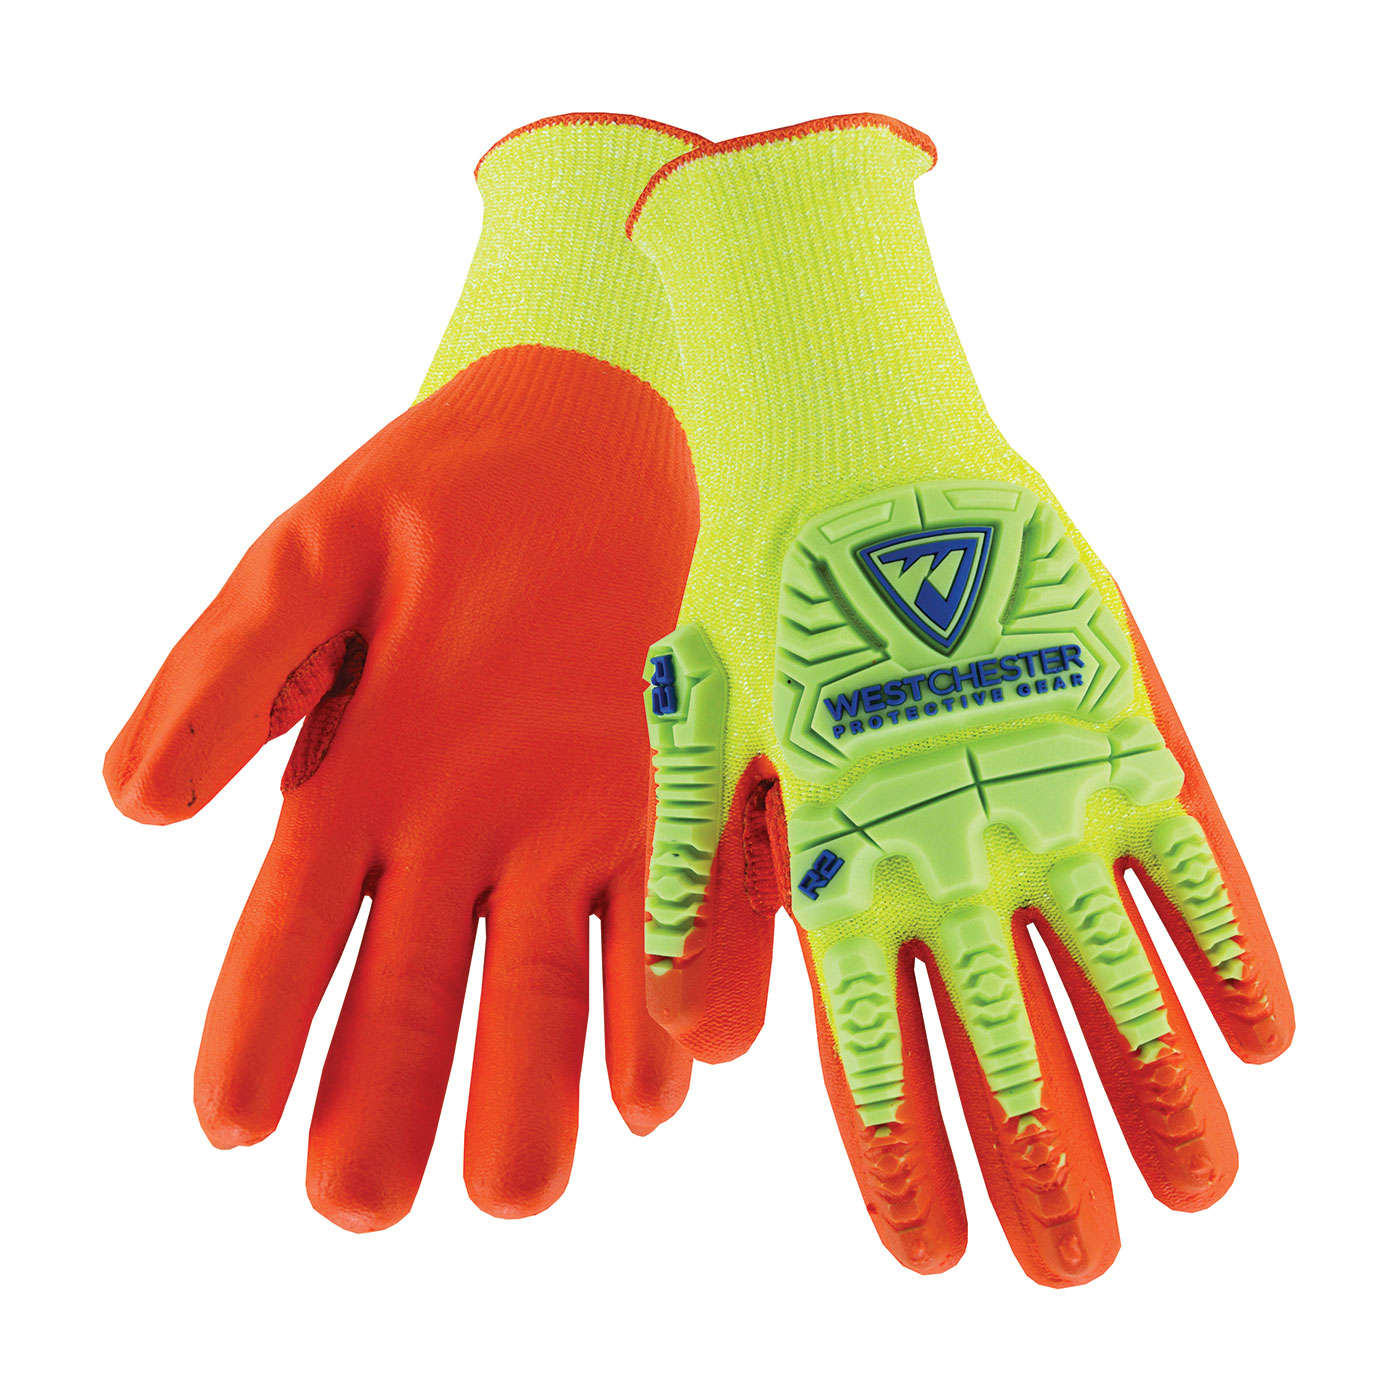 West Chester 87015/XL 87015 R15™ Rigger Gloves, X-Large, Synthetic Leather, Red/Yellow, Band Top Cuff